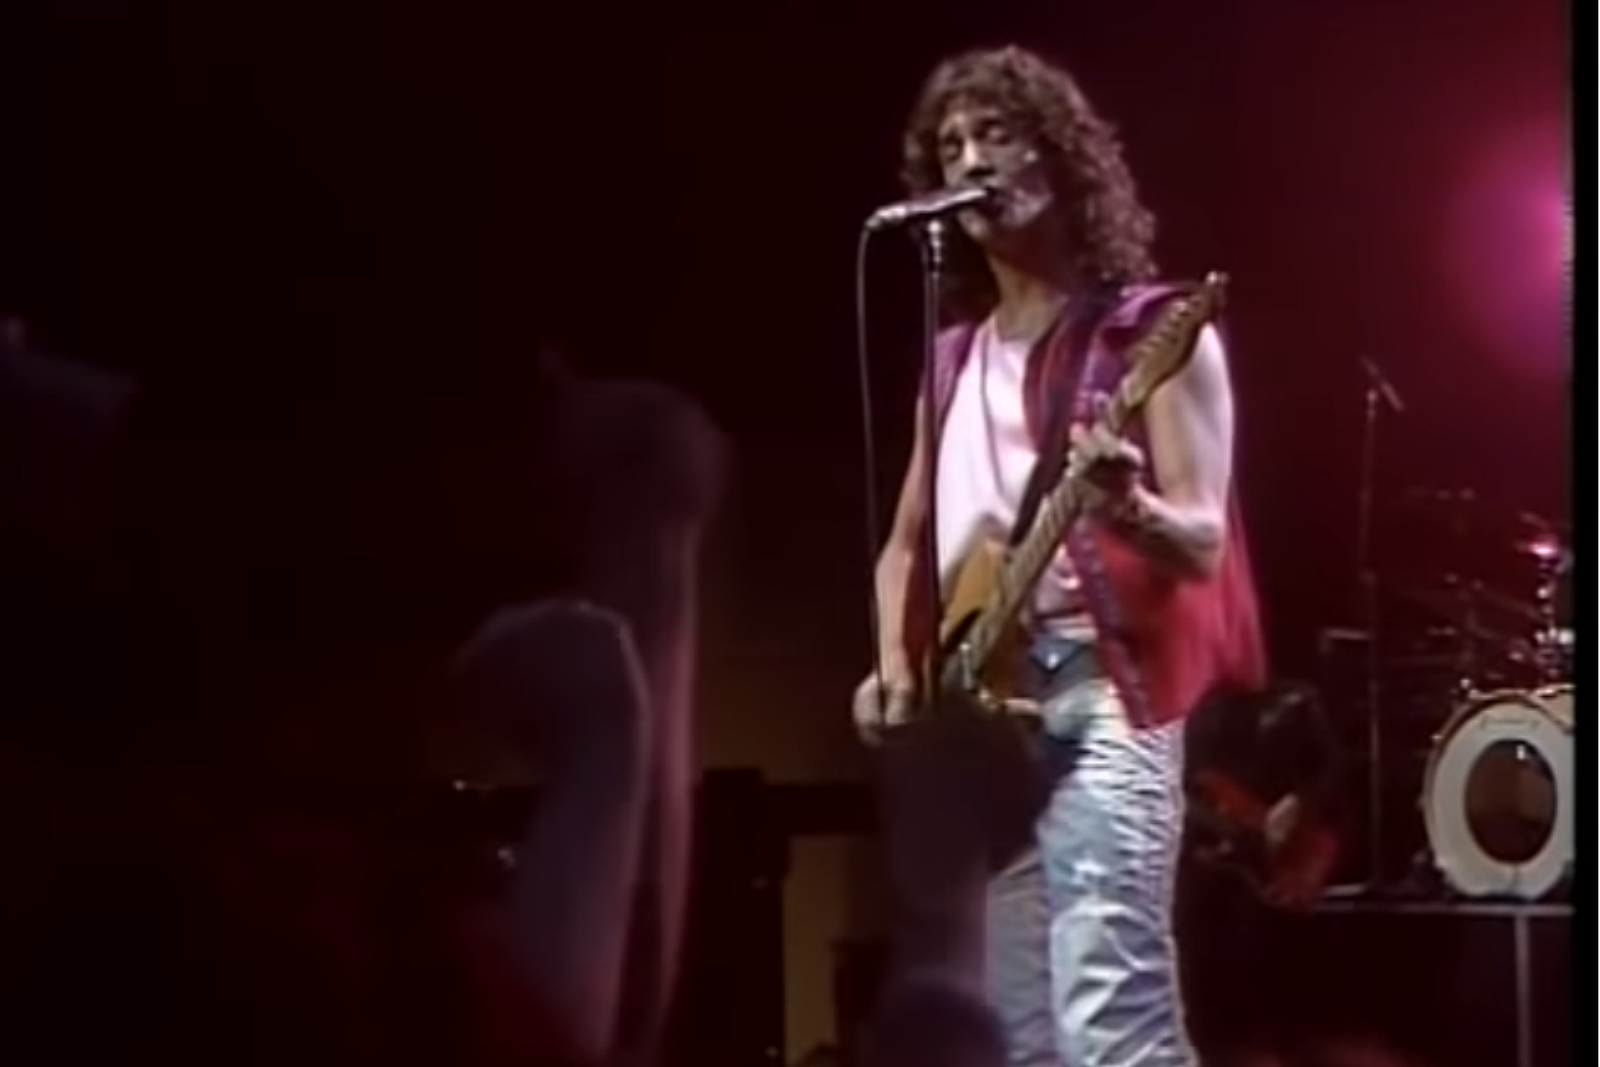 Blimp Time-Hop: Billy Squier Packs The CCCC In '83